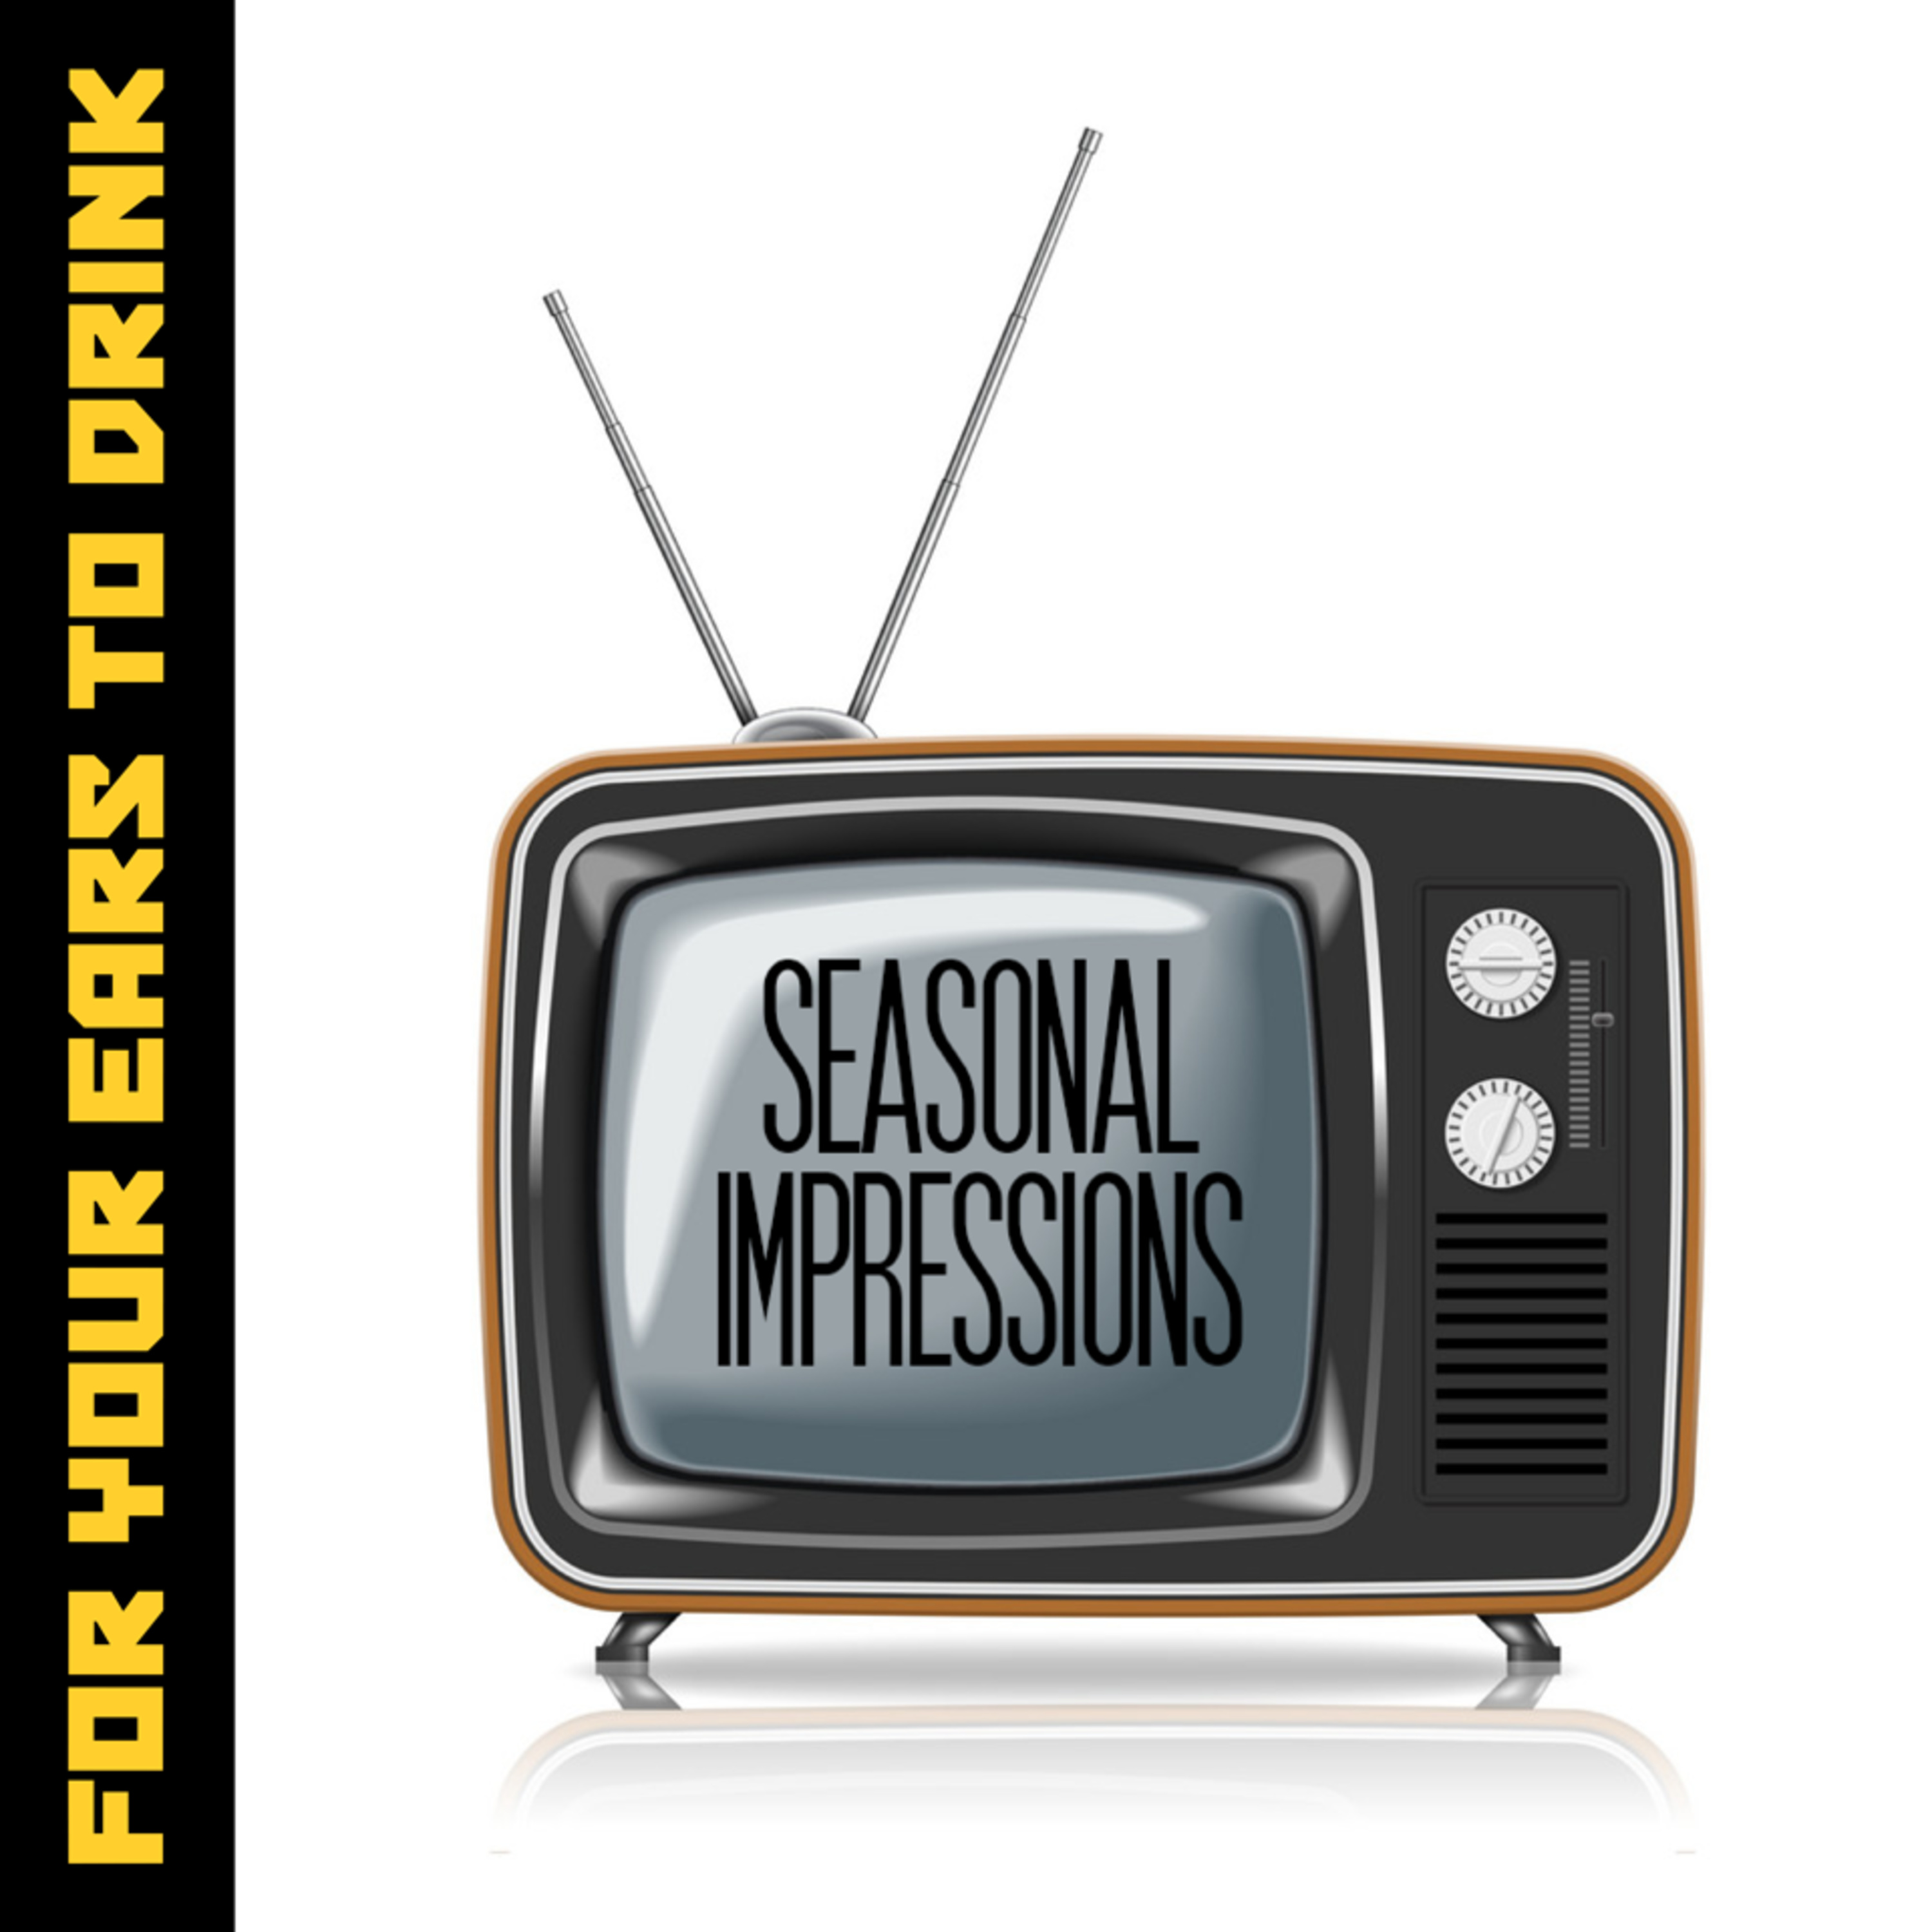 Seasonal Impressions - Episode 14: Game of Thrones Season 7 - Pirates and Zombies and Dragons, Oh My!